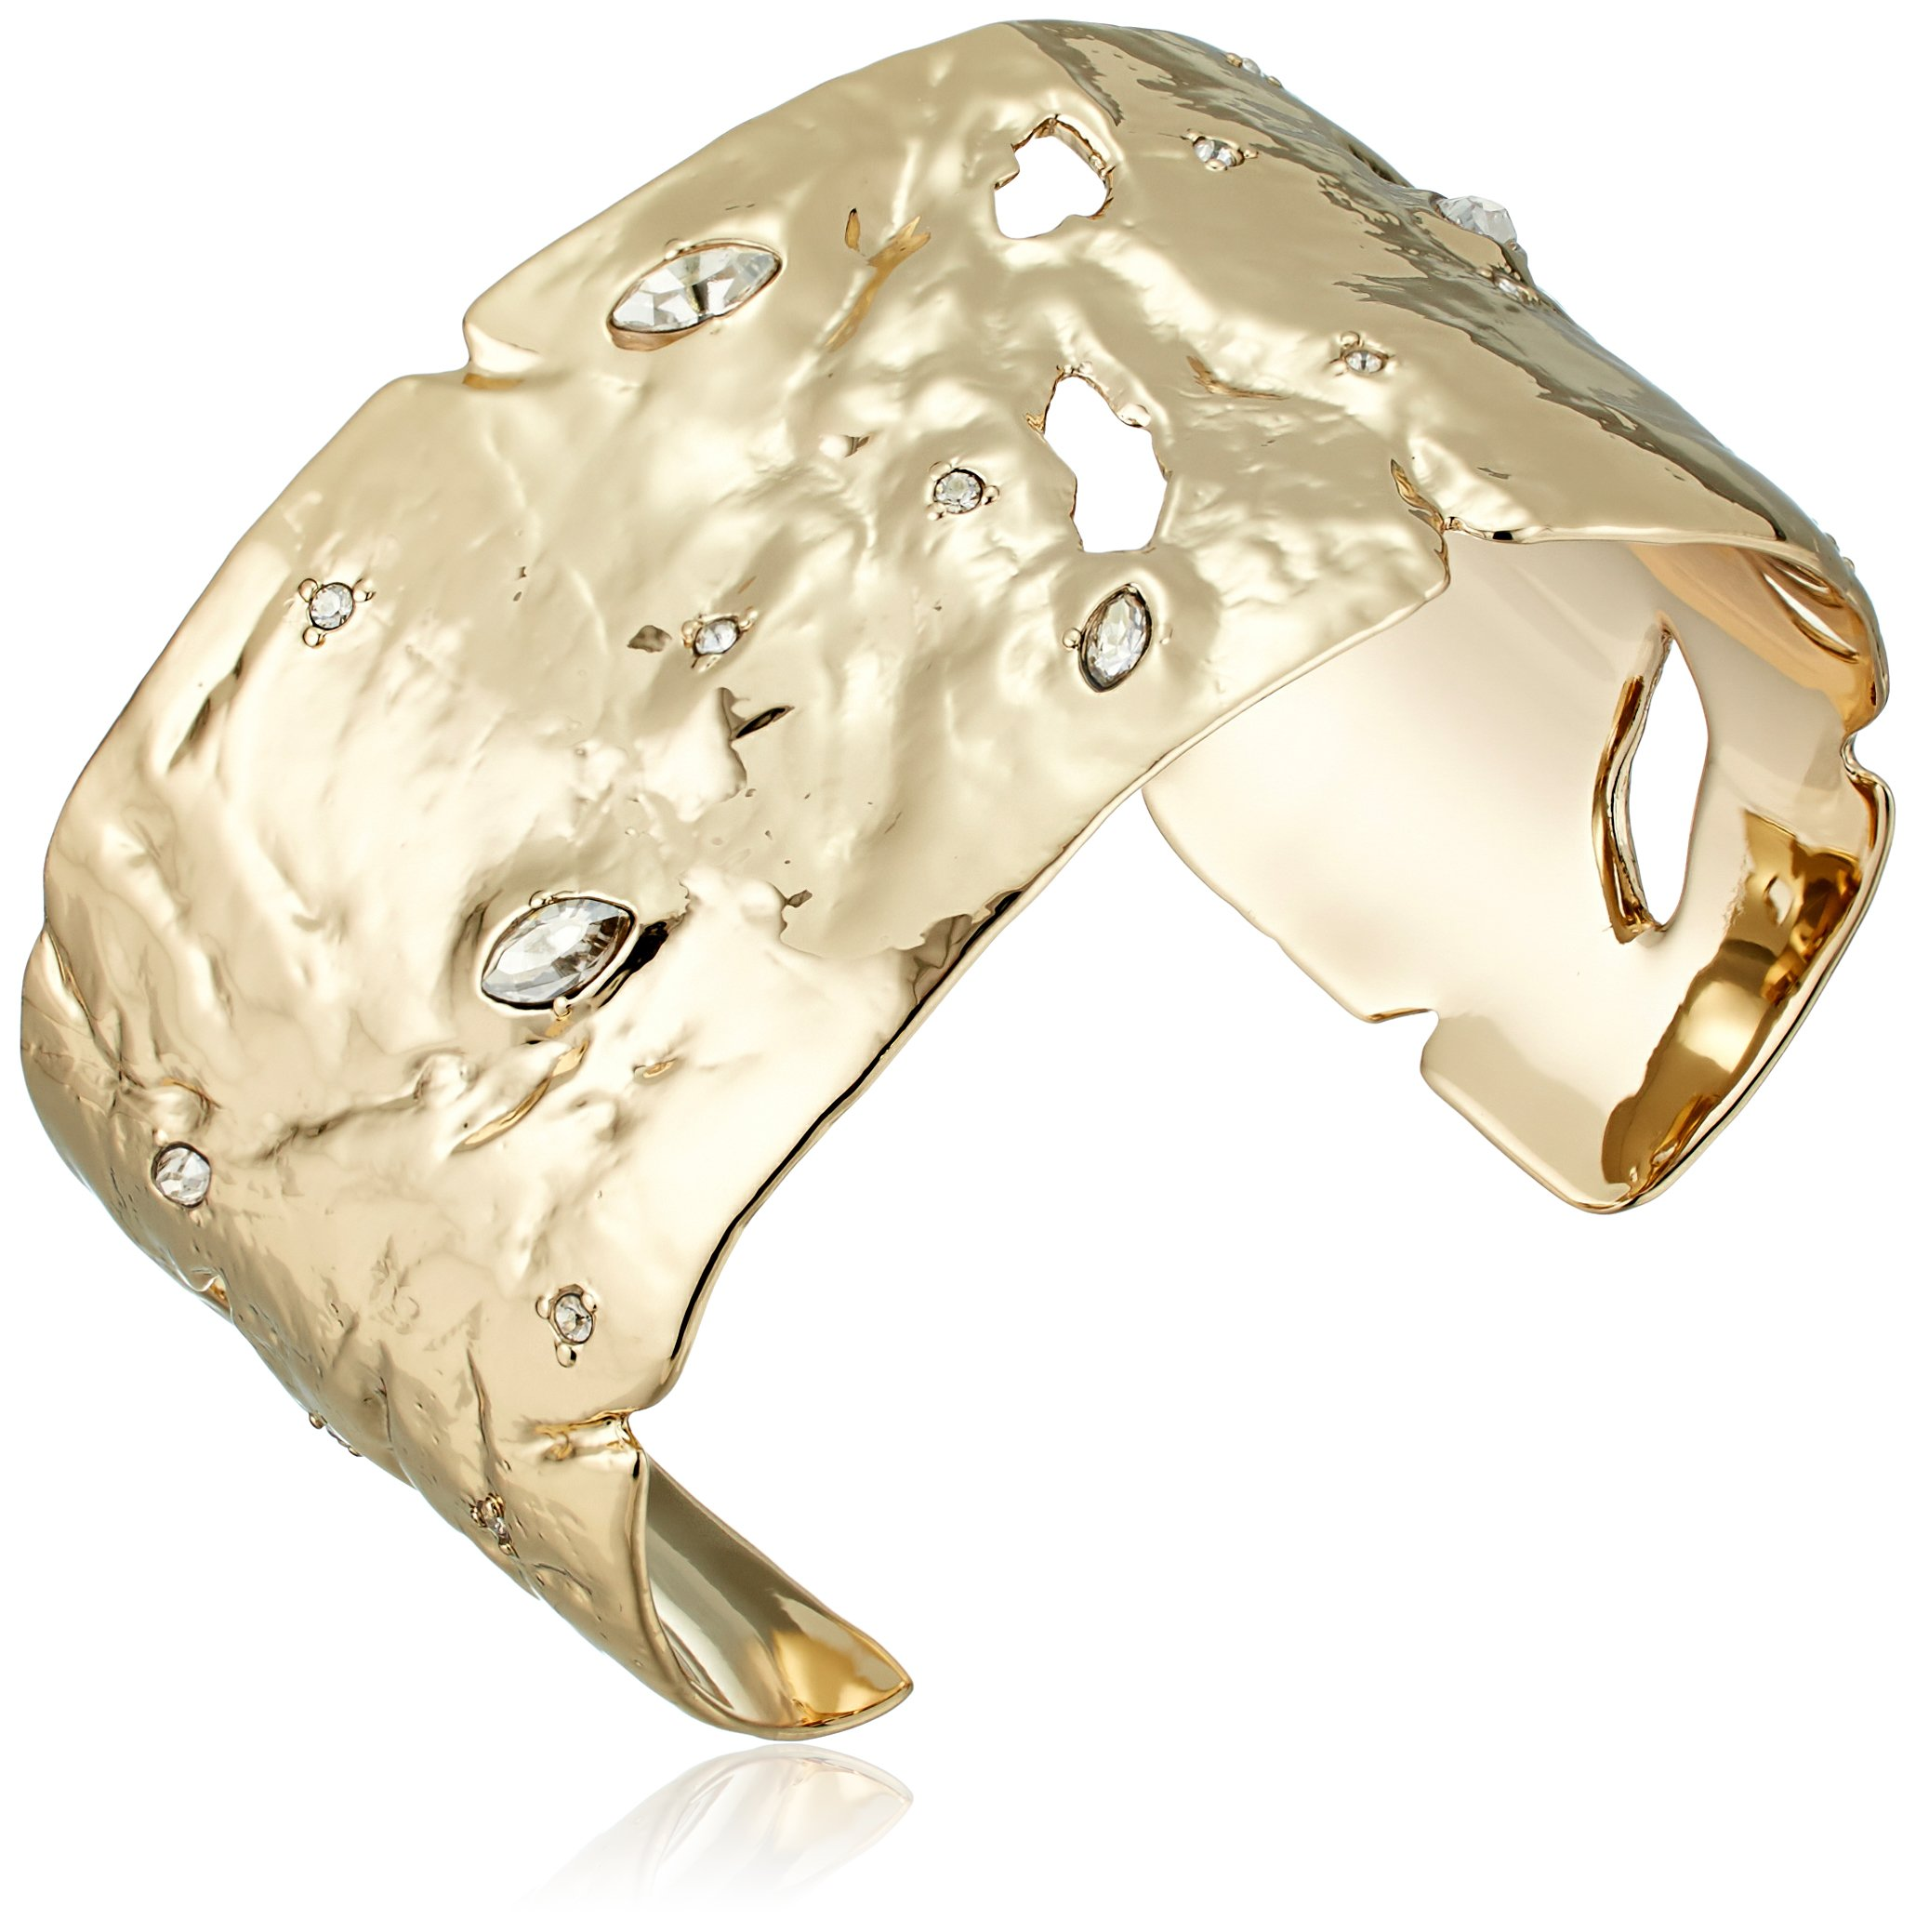 Alexis Bittar Fall 2017 Textured with Crystal Accent 10k Gold Cuff Bracelet